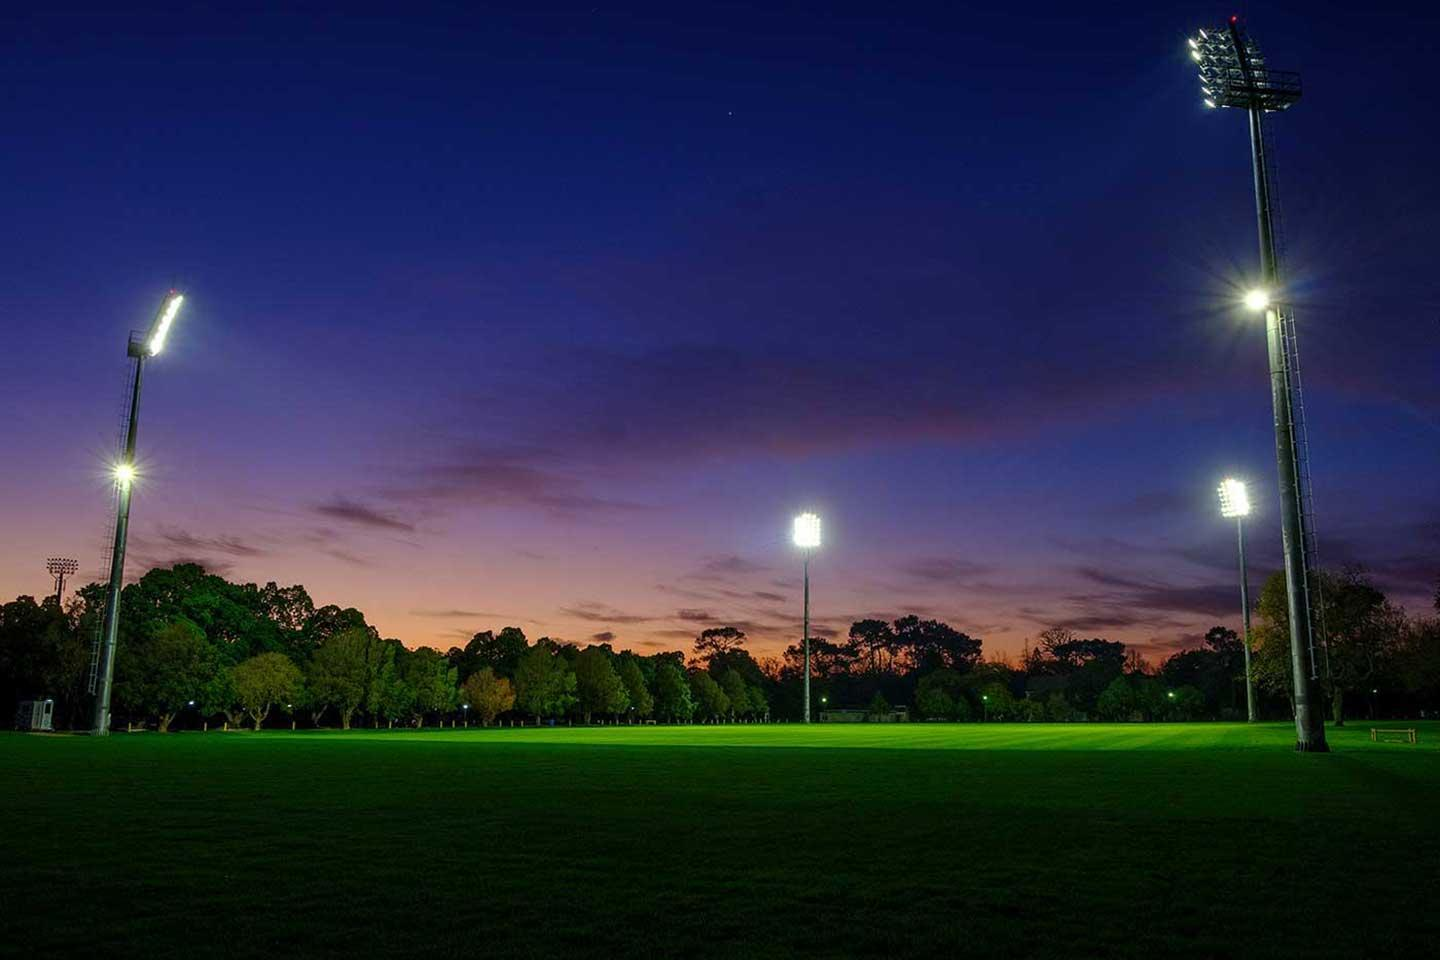 OMNISTAR sports lighting solution switches on instantly, saving time, energy and money